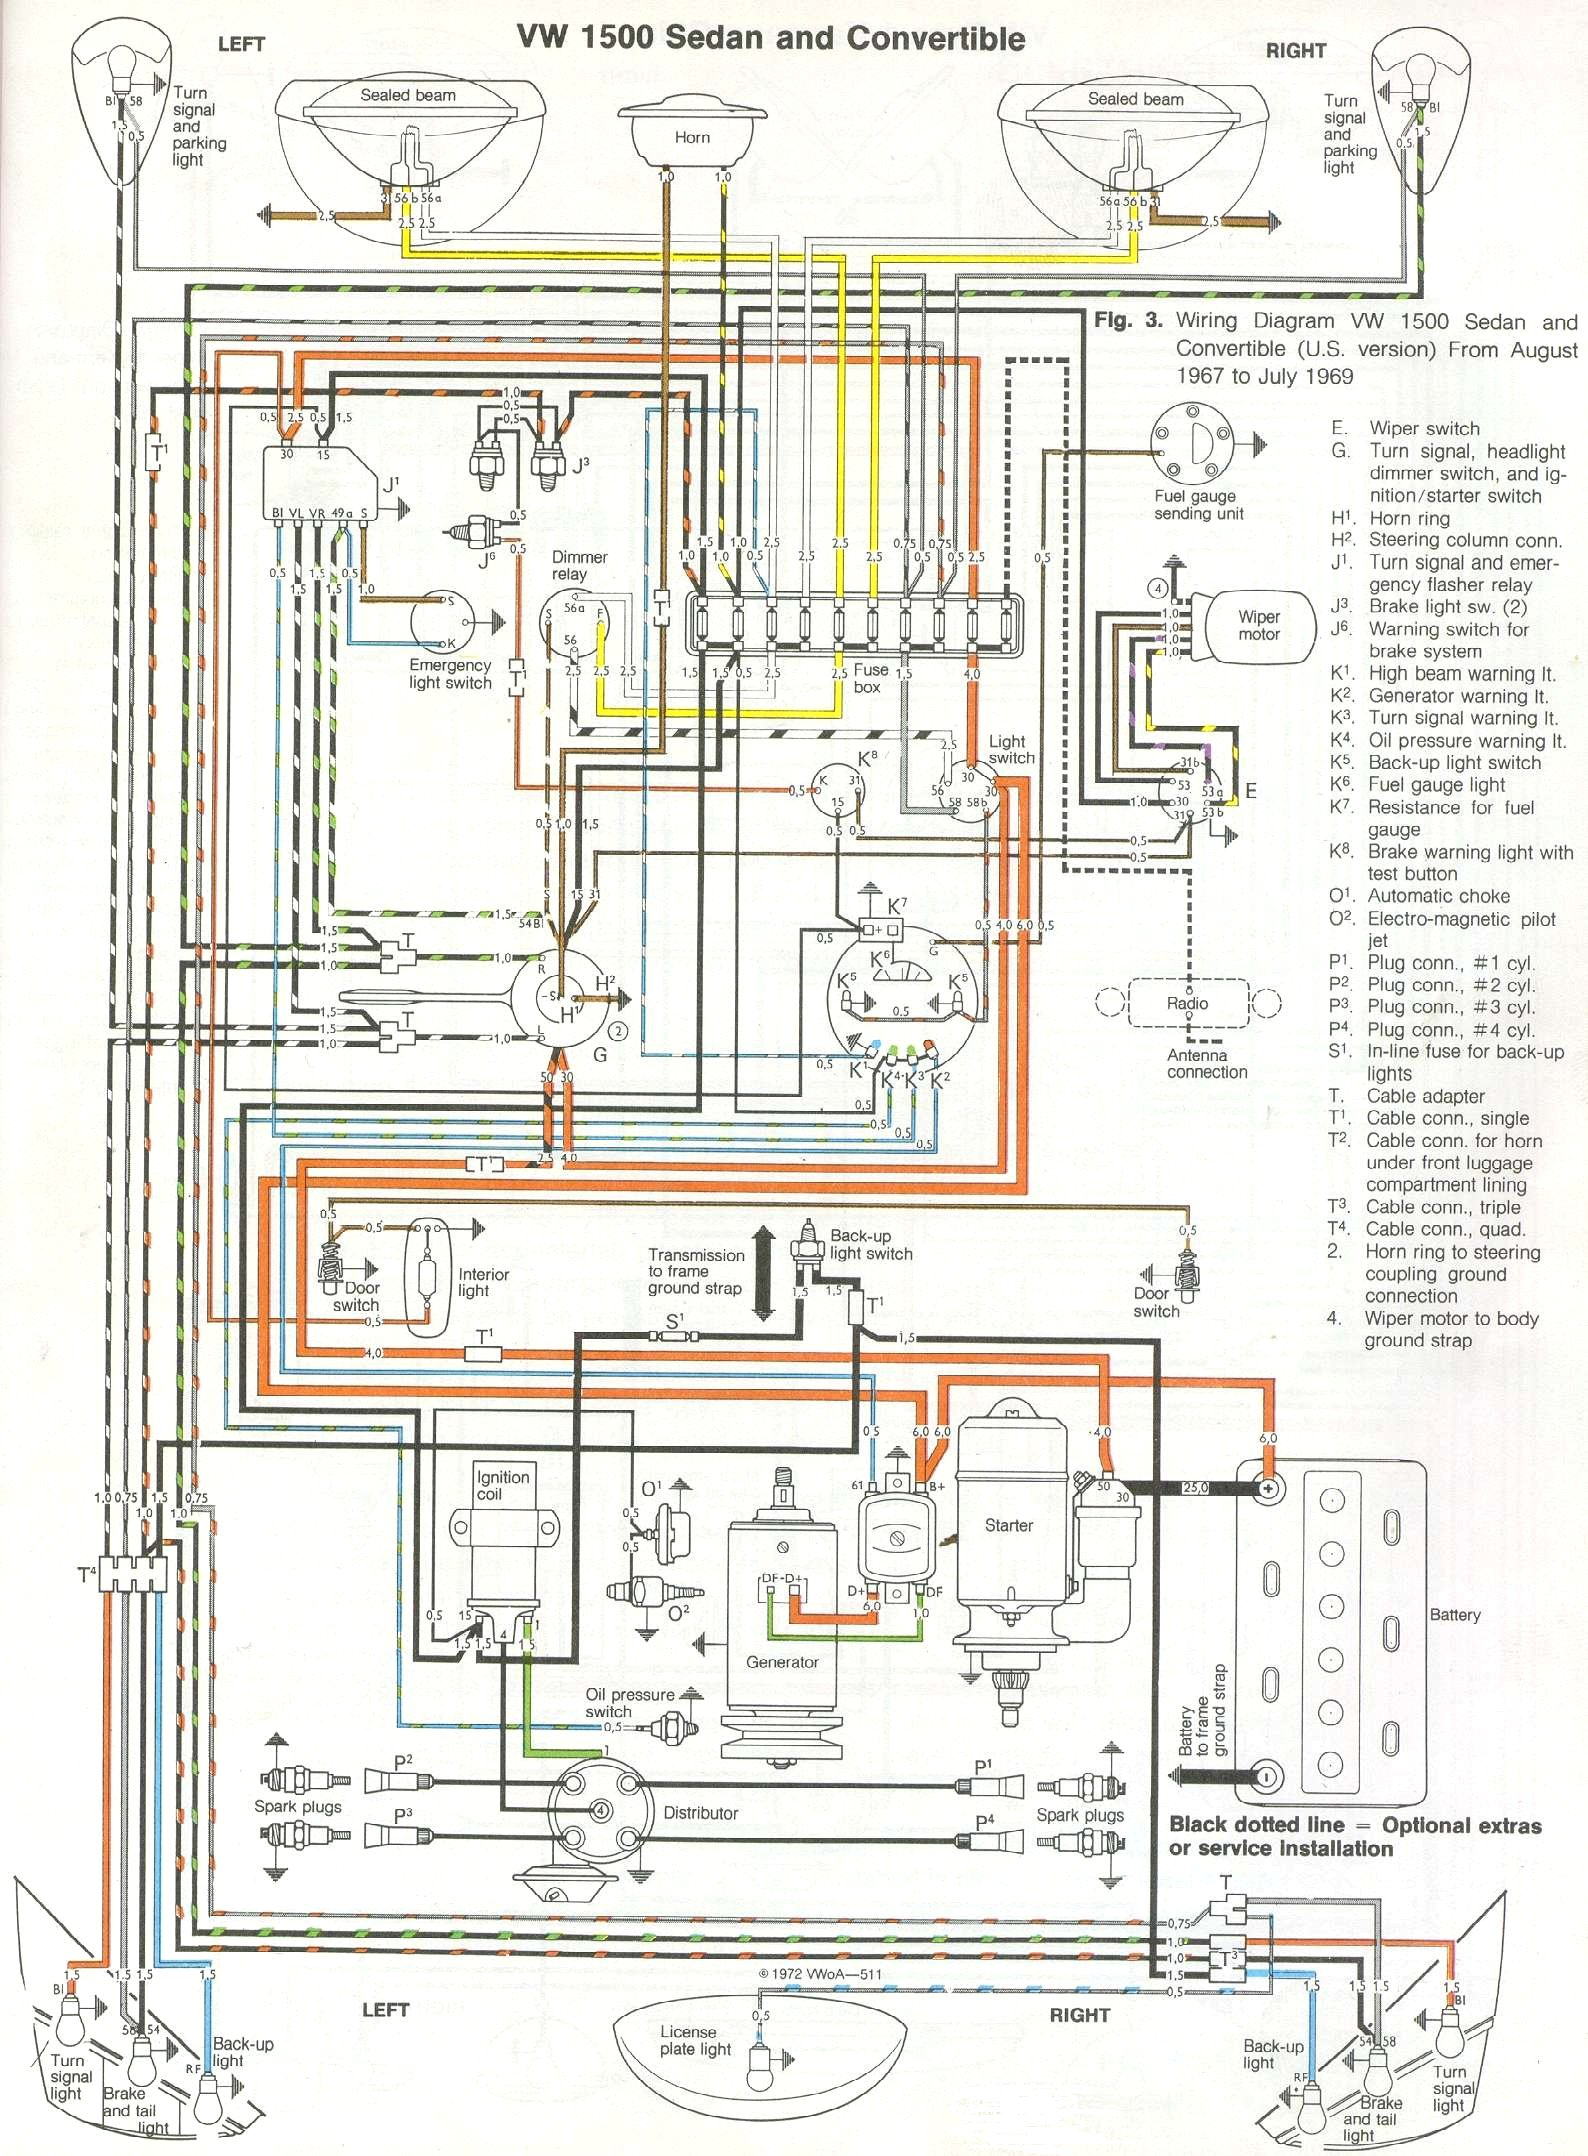 bug_6869 thesamba com type 1 wiring diagrams 1973 vw beetle wiring diagram at readyjetset.co